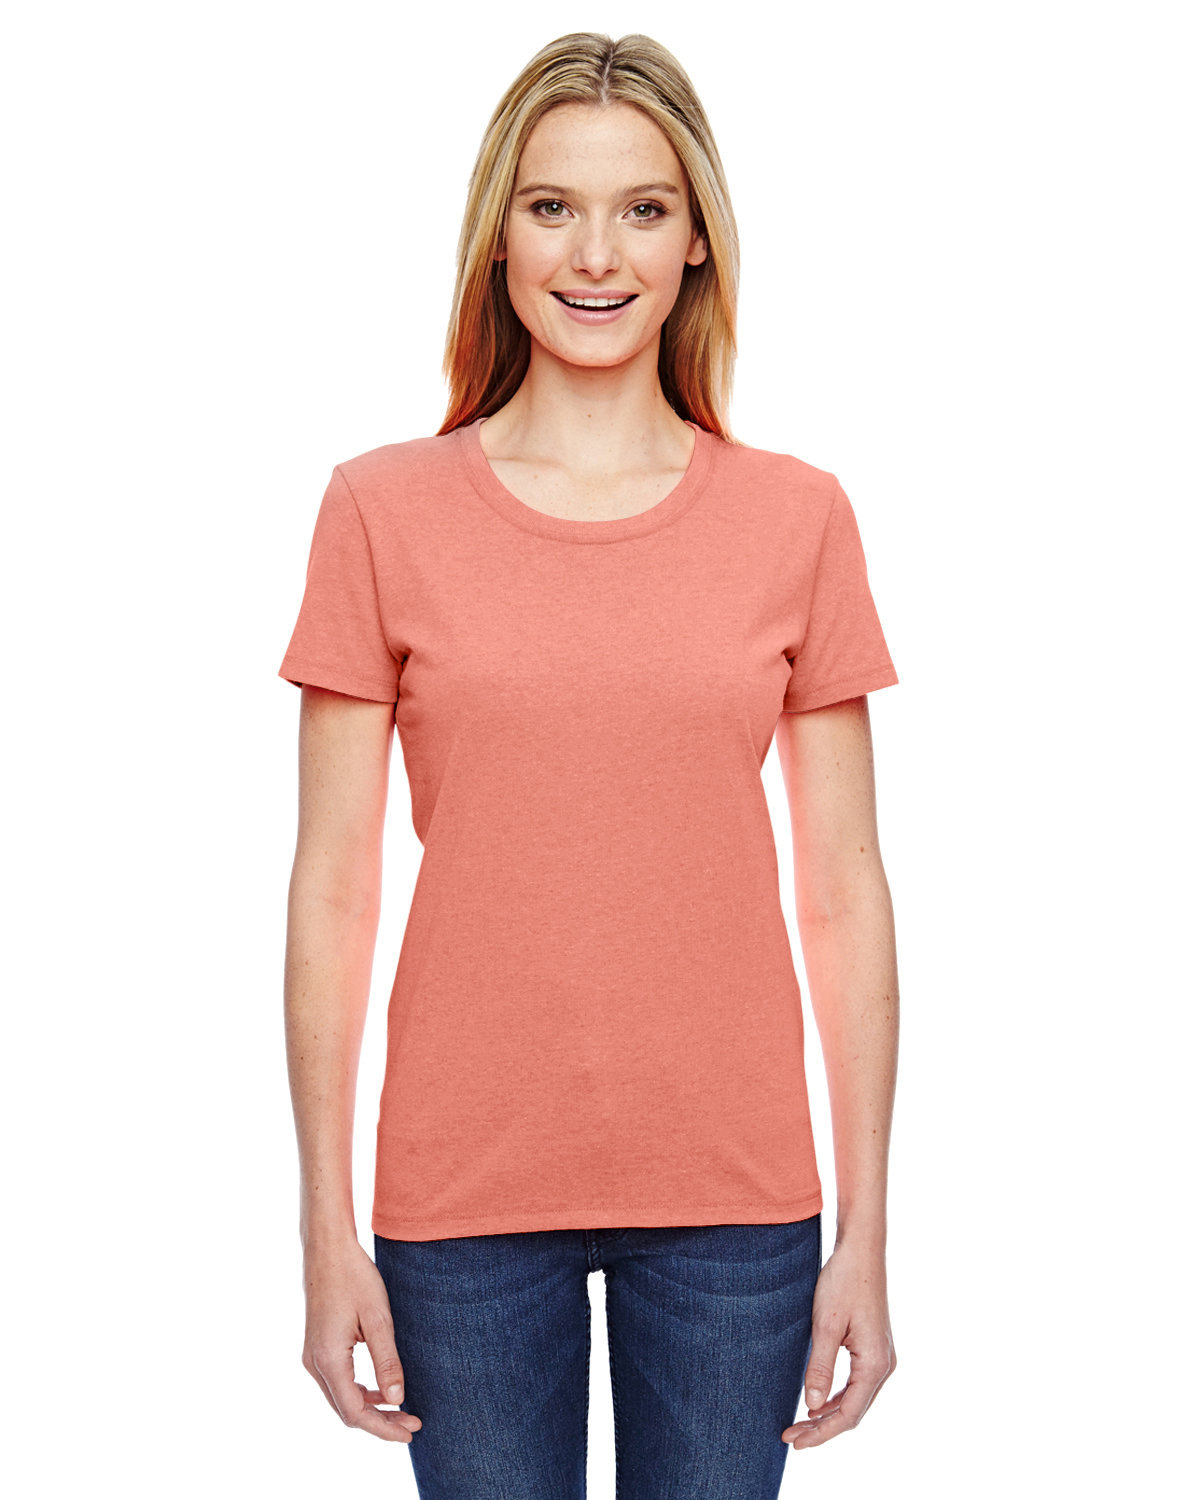 Fruit of the Loom Ladies' HD Cotton™ T-Shirt RETRO HTR CORAL